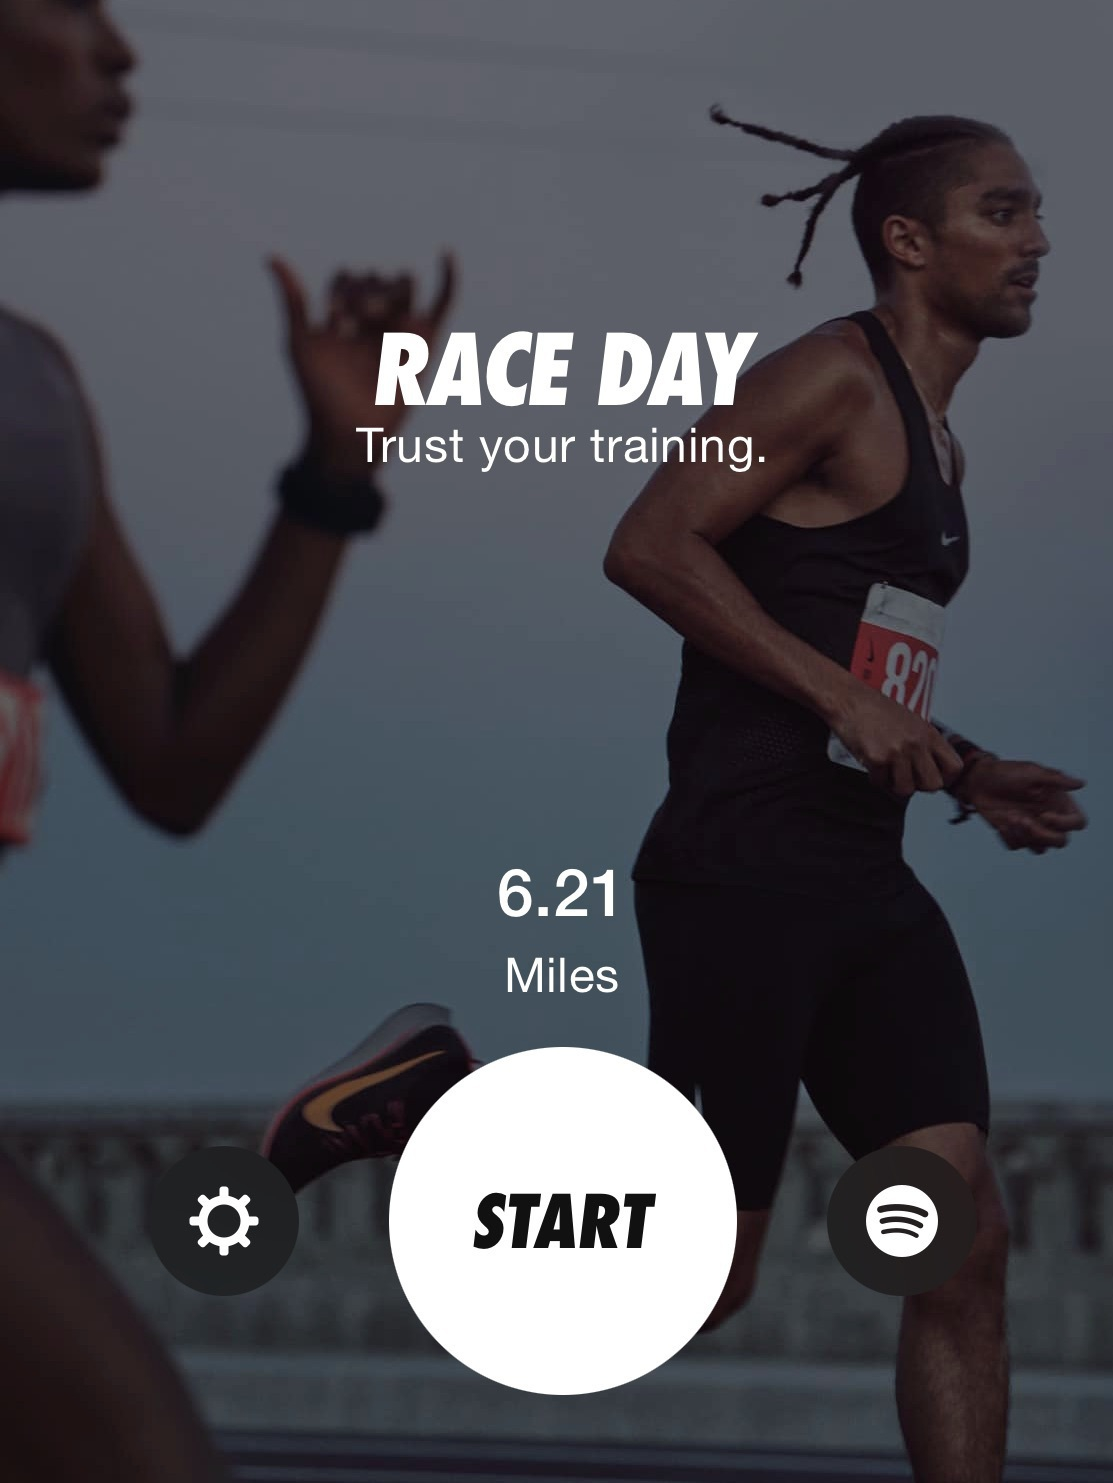 10K Trained for with an app